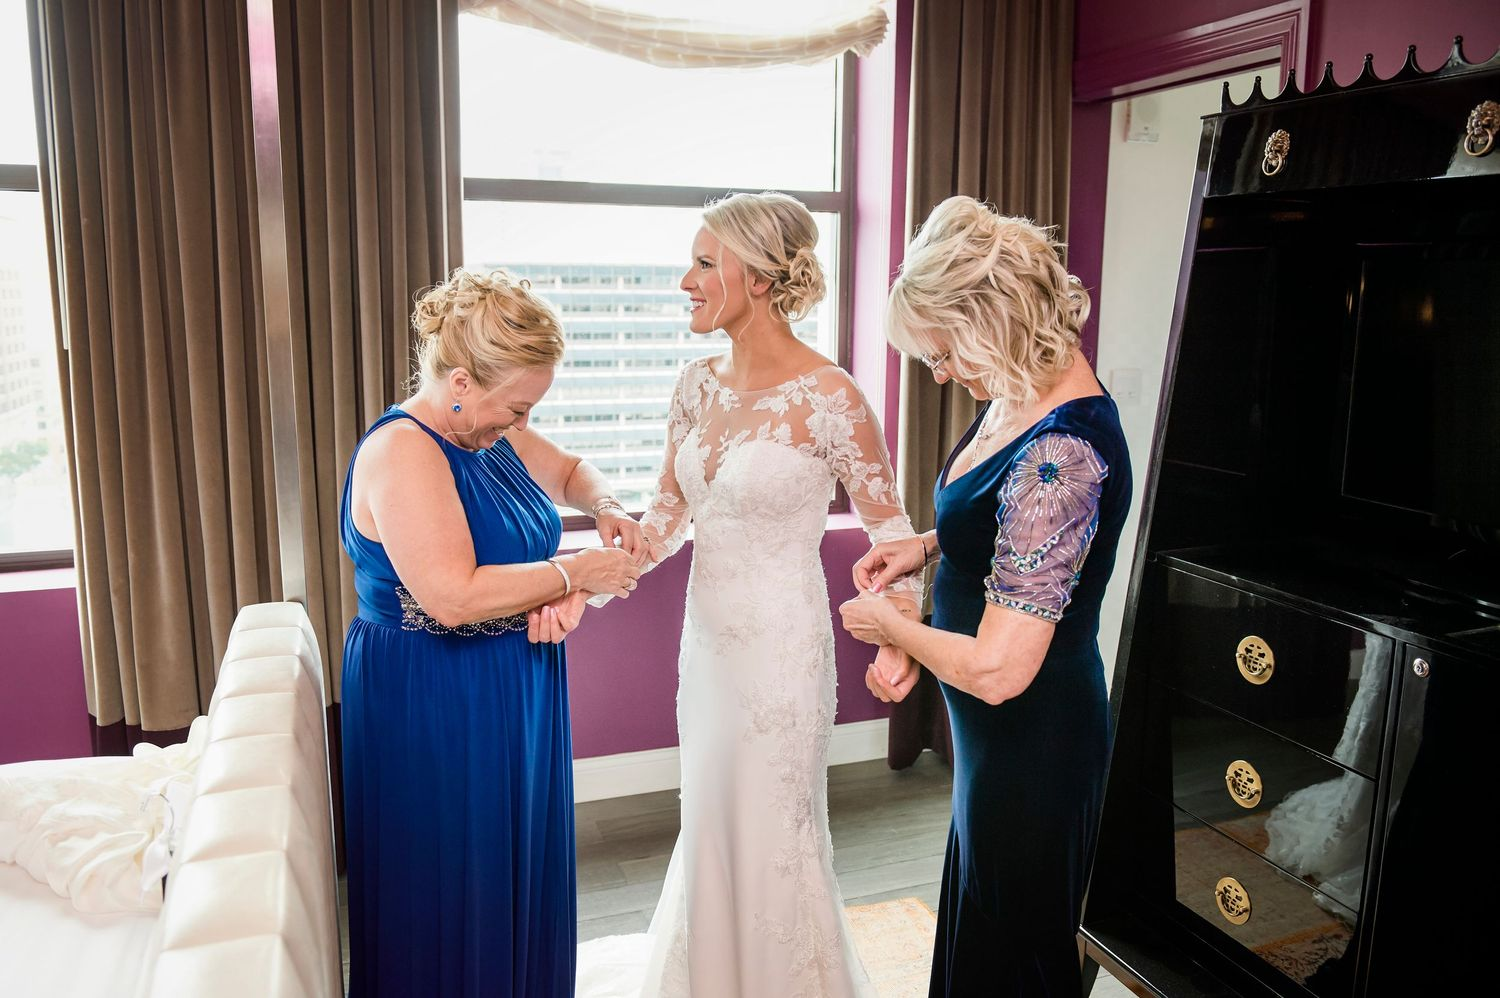 mother of groom and mother of bride helping bride get ready wedding photo